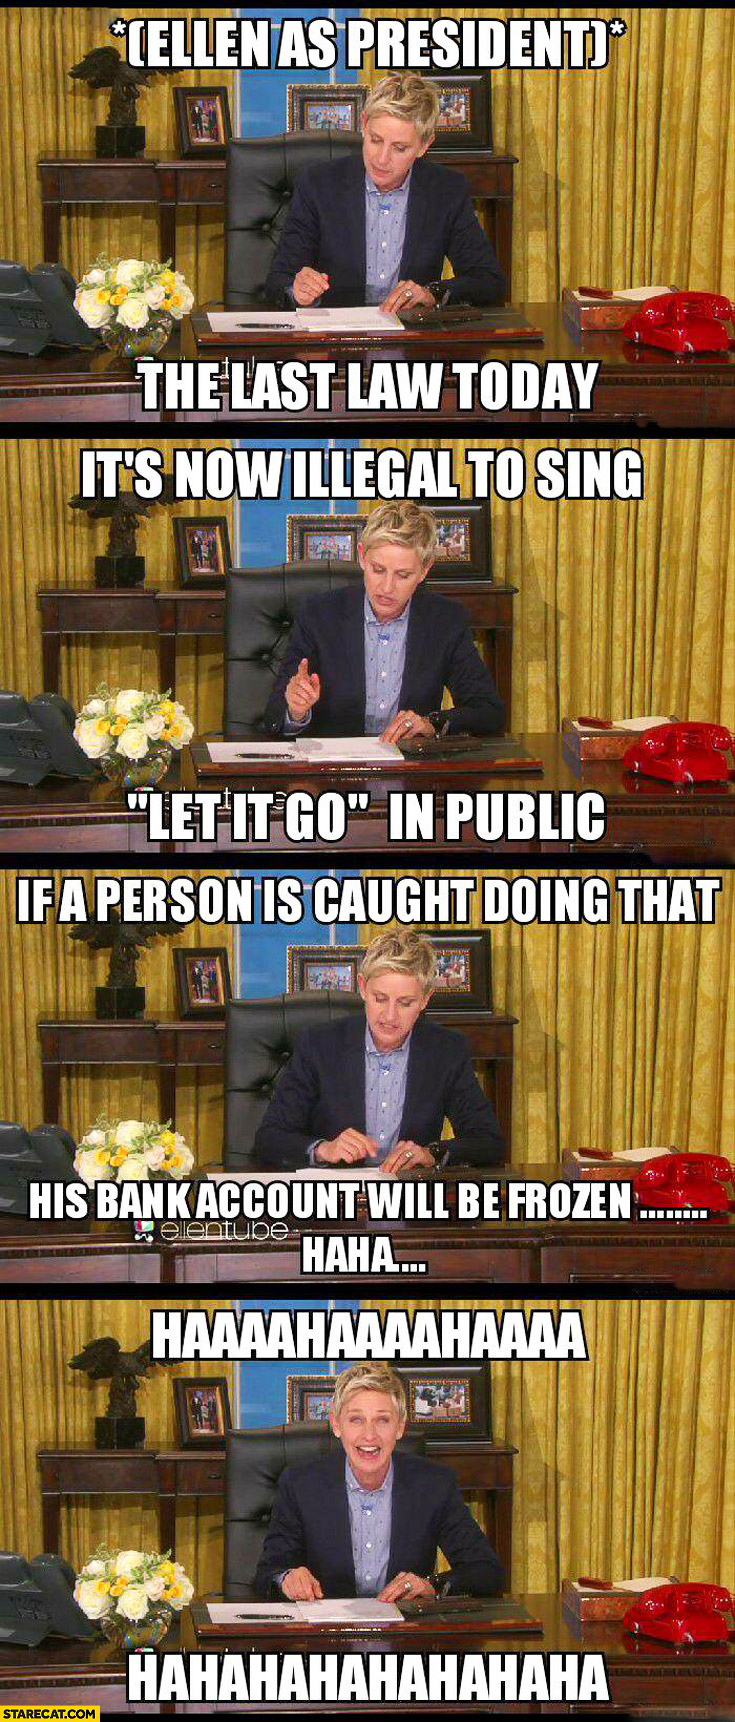 Ellen as a president law it's illegal to sing let it go in public